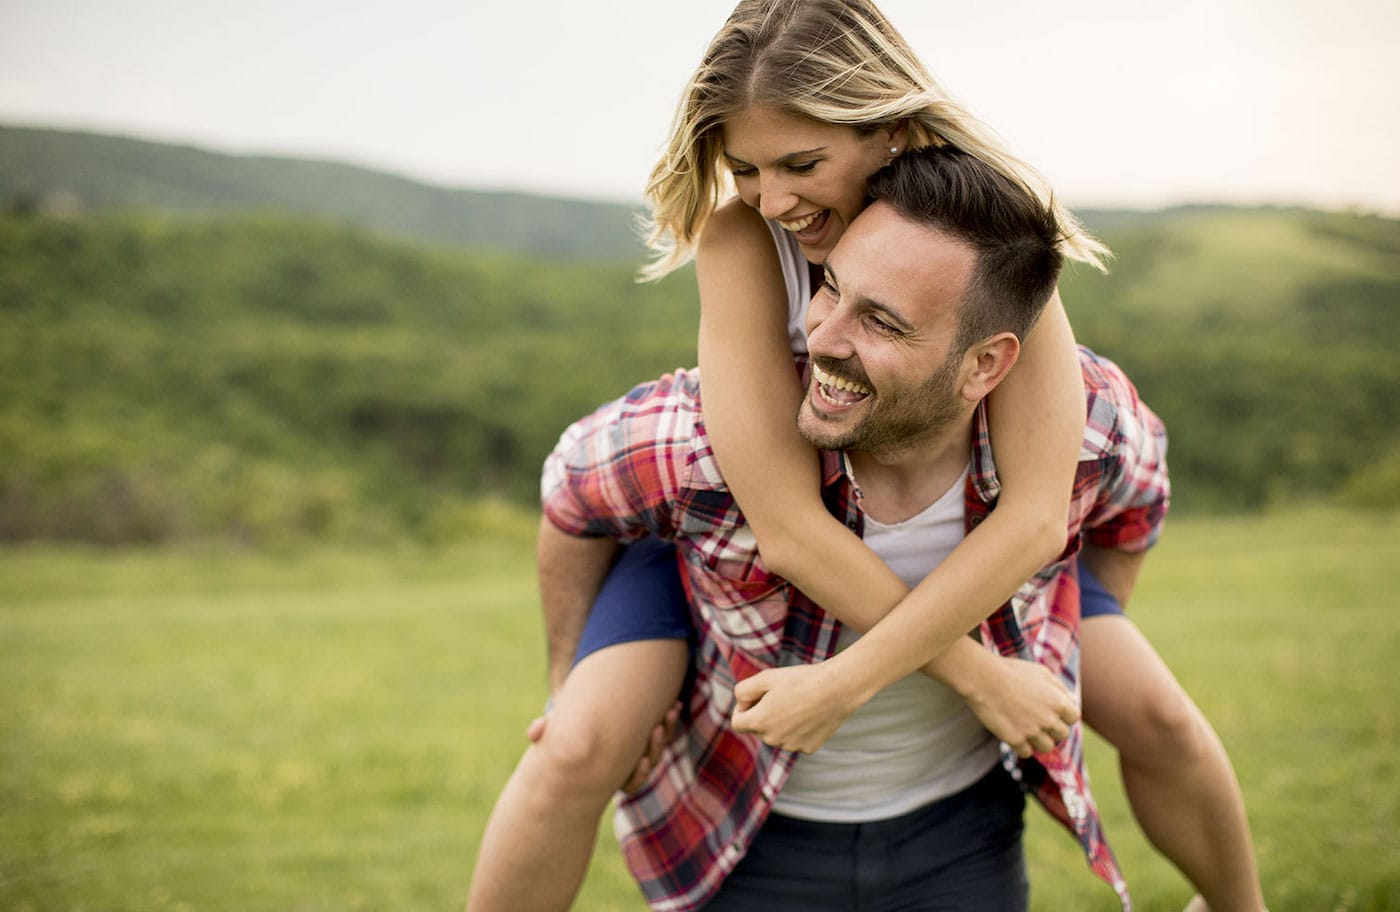 Date nights can be so much fun, but they can also be so expensive! Even just dinner and a movie can put a dent in your budget. So why not try these budget friendly date night ideas that are tons of fun, without the huge price tag.